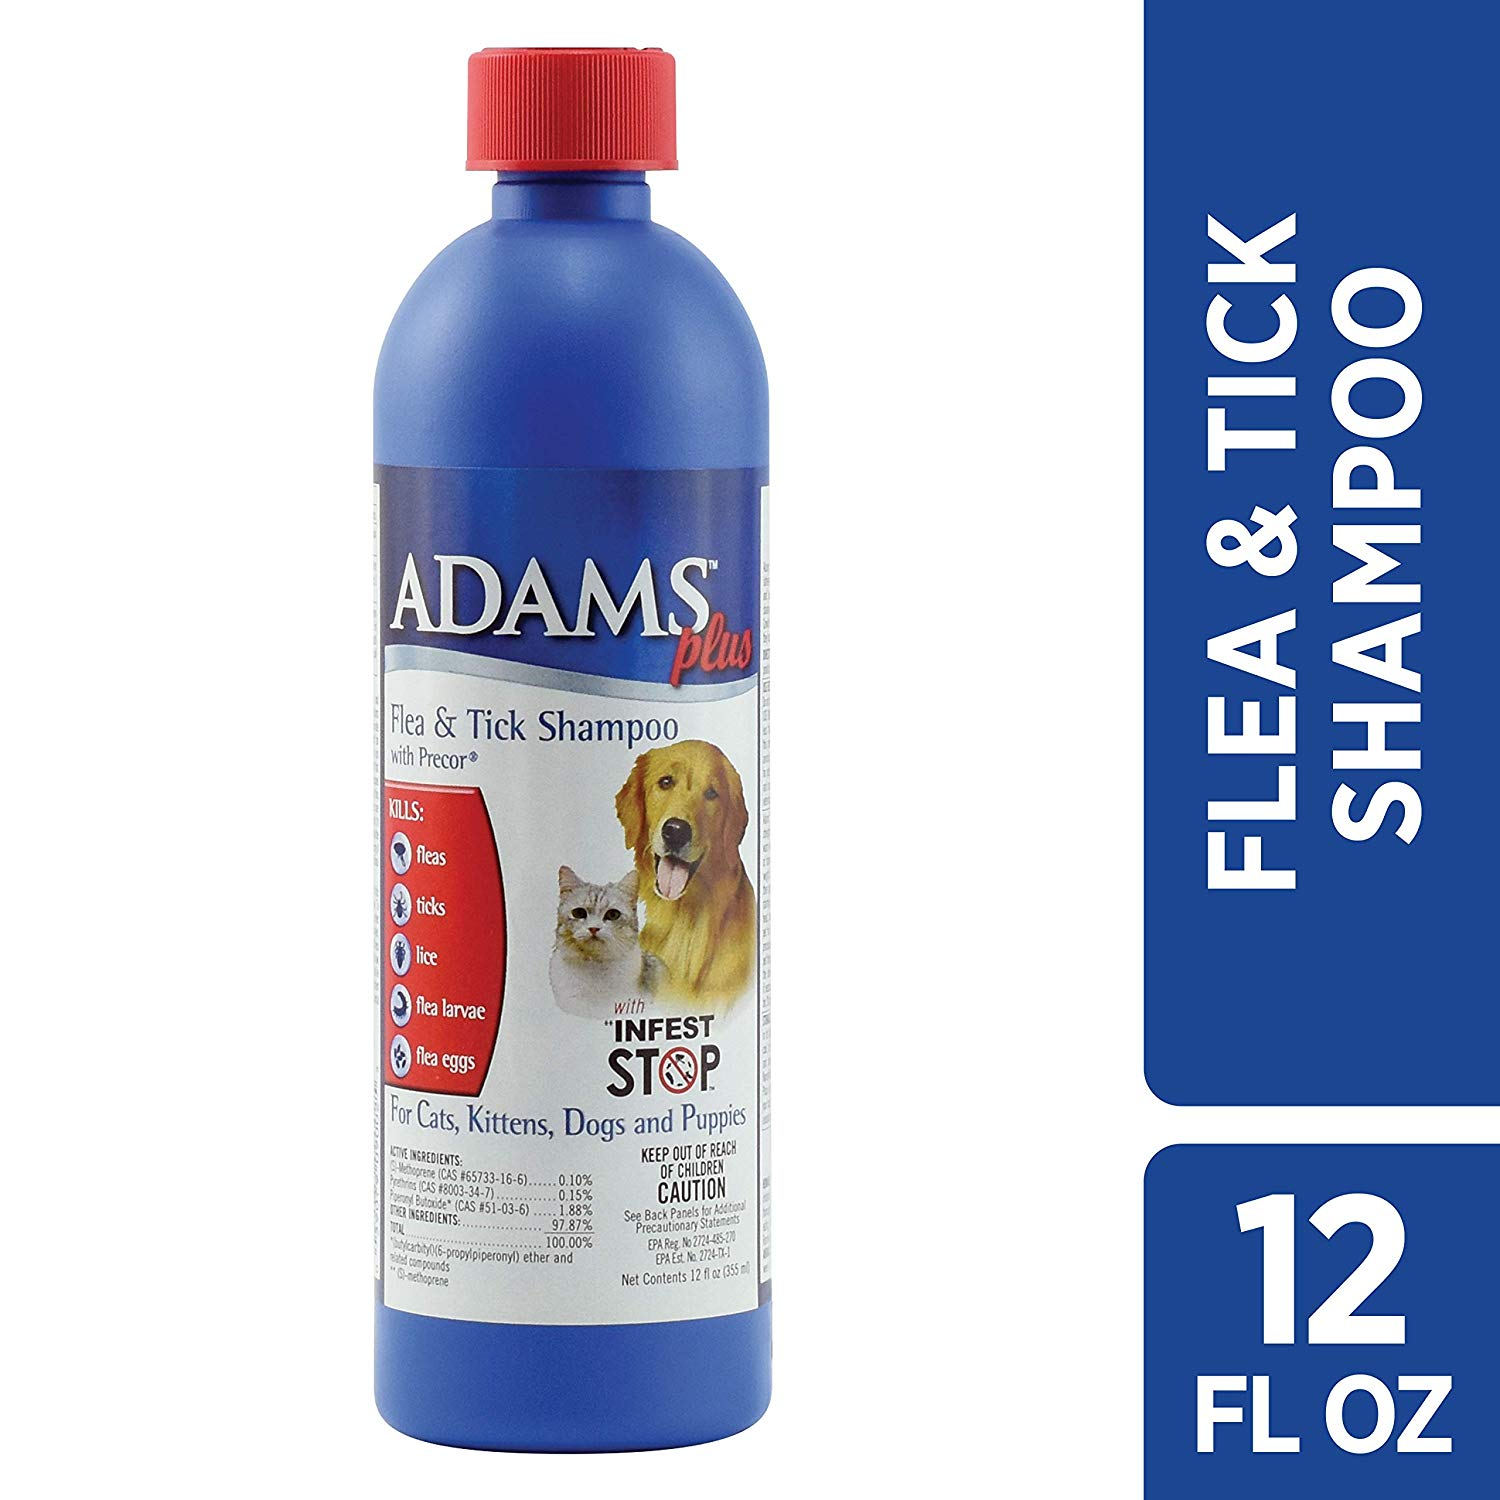 Adams Plus Flea & Tick Shampoo